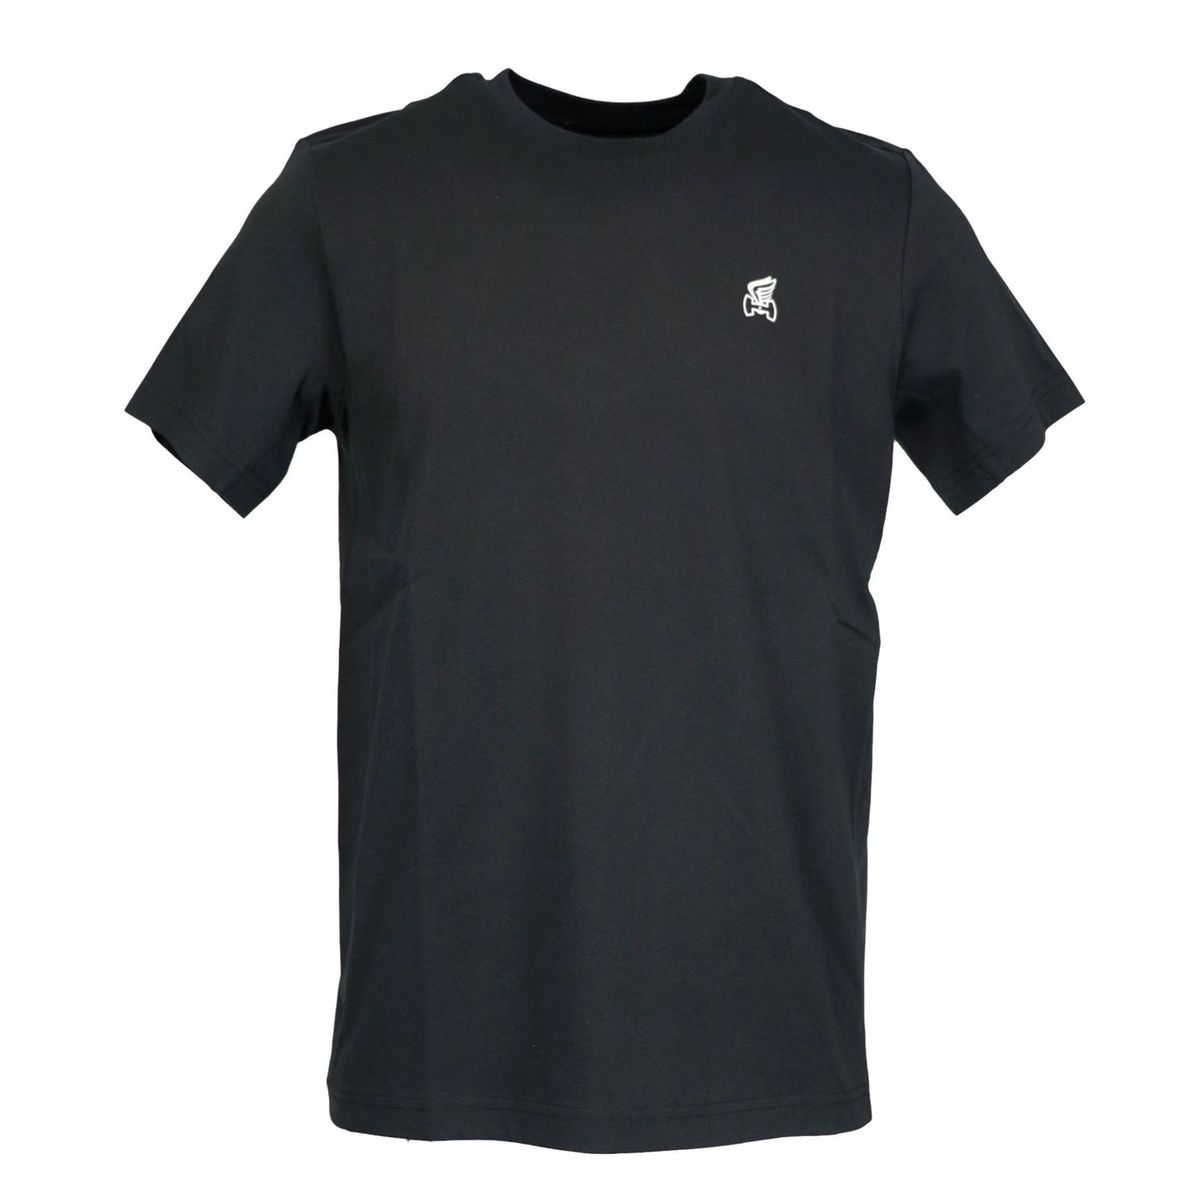 Short sleeve cotton T-shirt with small H logo and wing Black Hogan